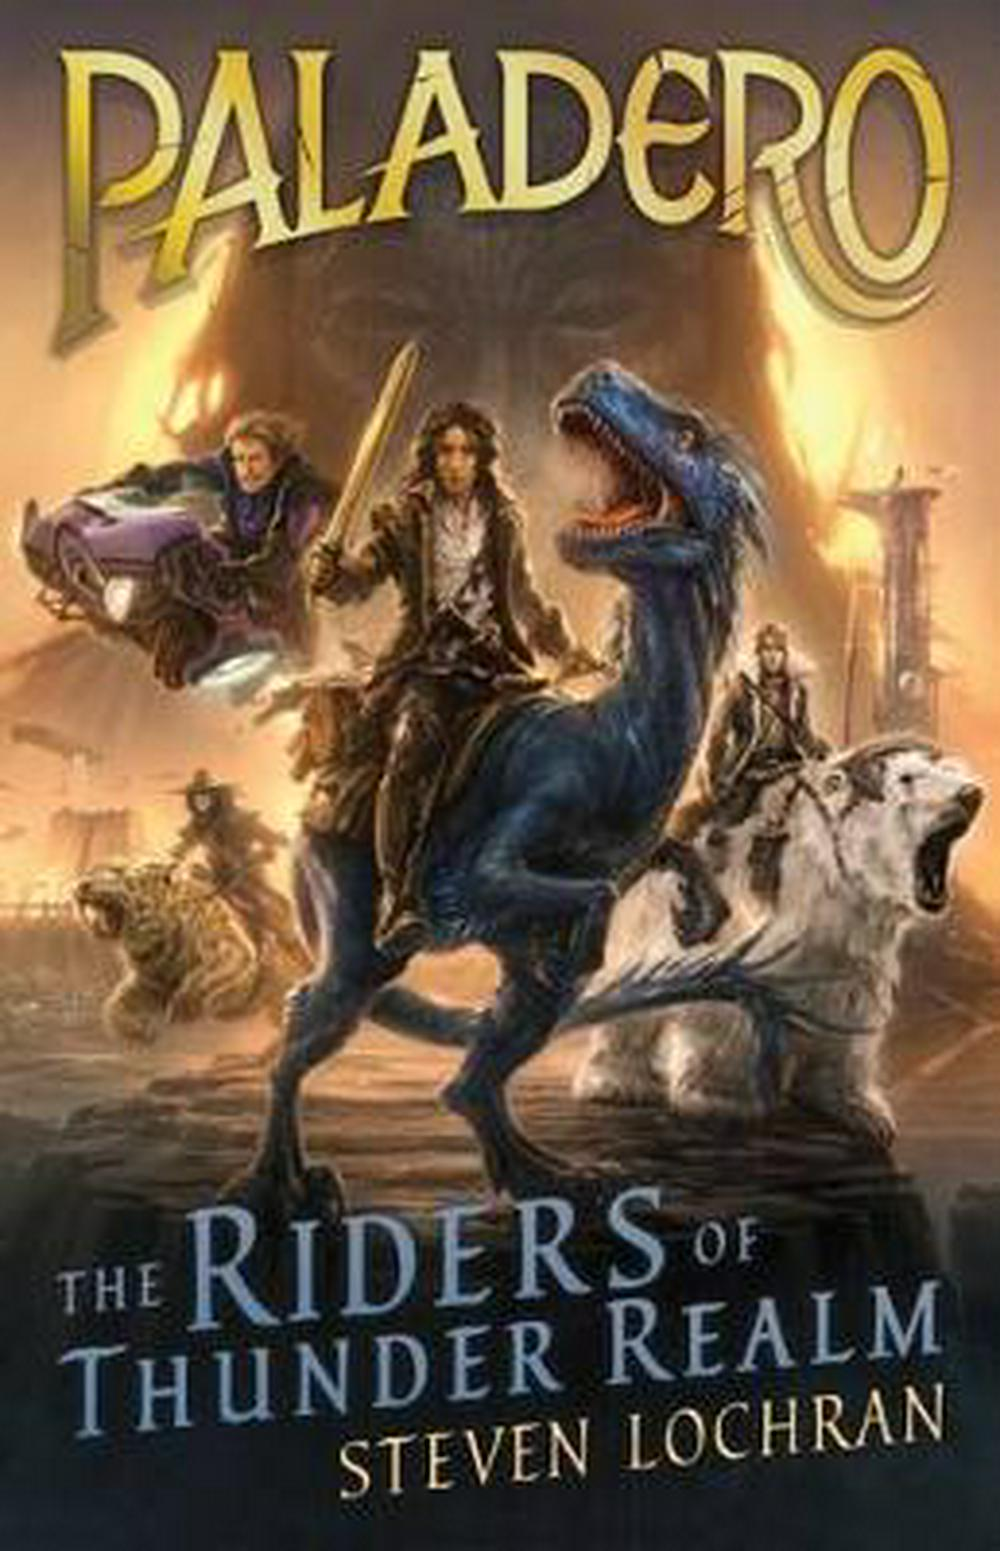 Paladero: The Riders of Thunder Realm by Steven Lochran, ISBN: 9781760124700